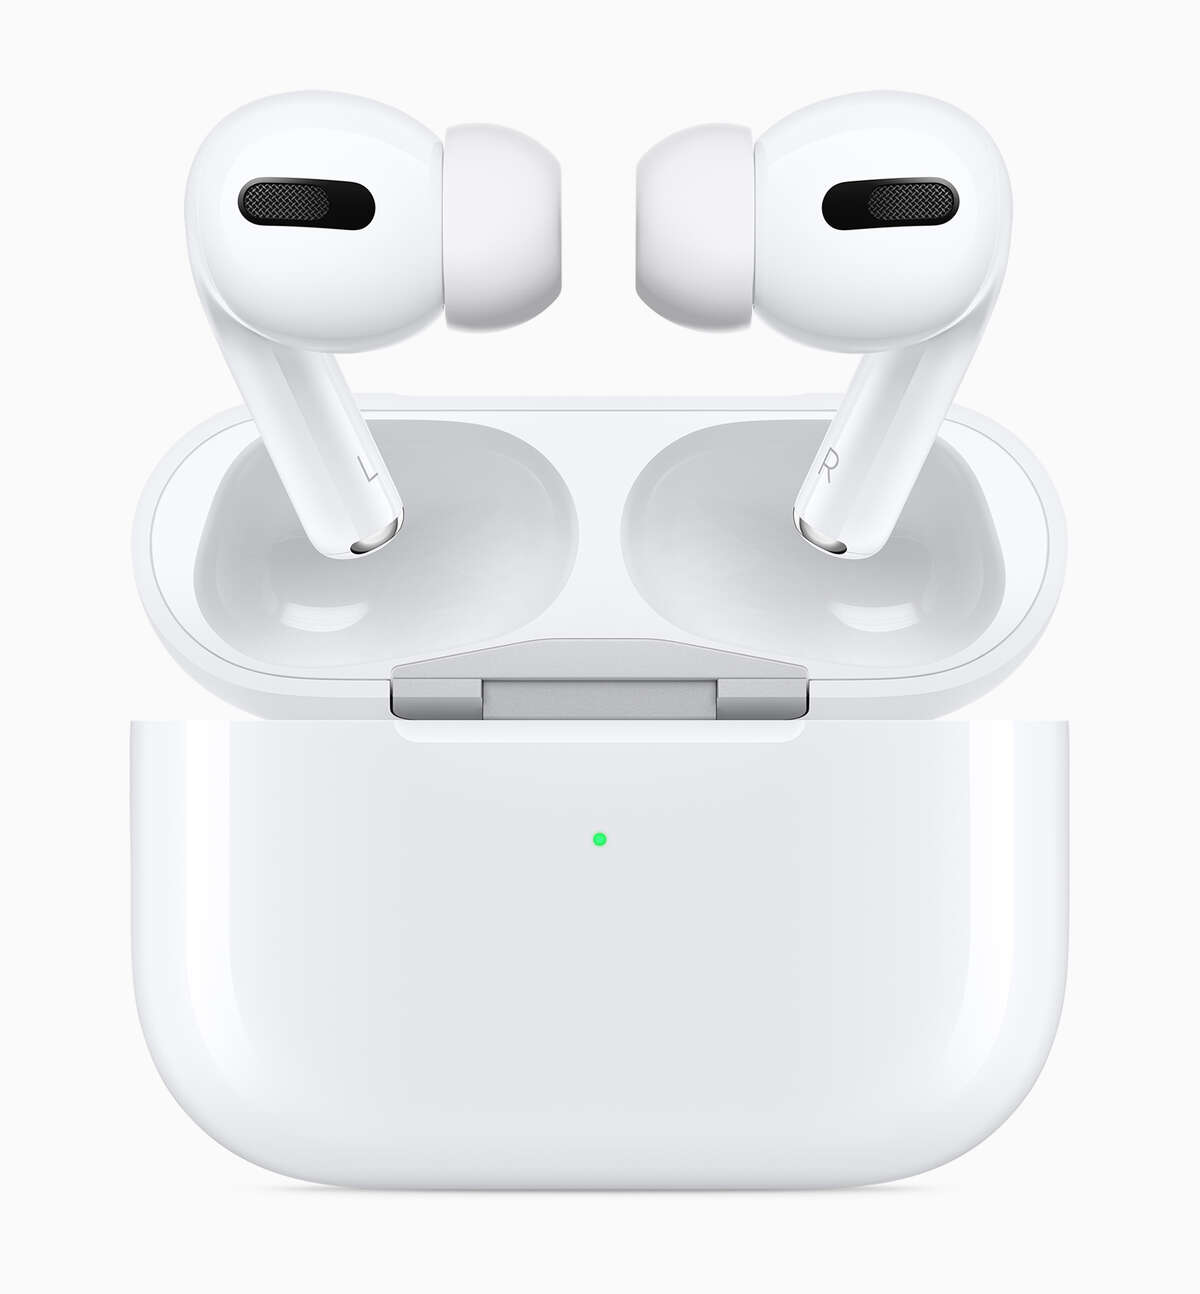 Apple's new AirPods Pro cost $249 and include noise cancelling capabilities.